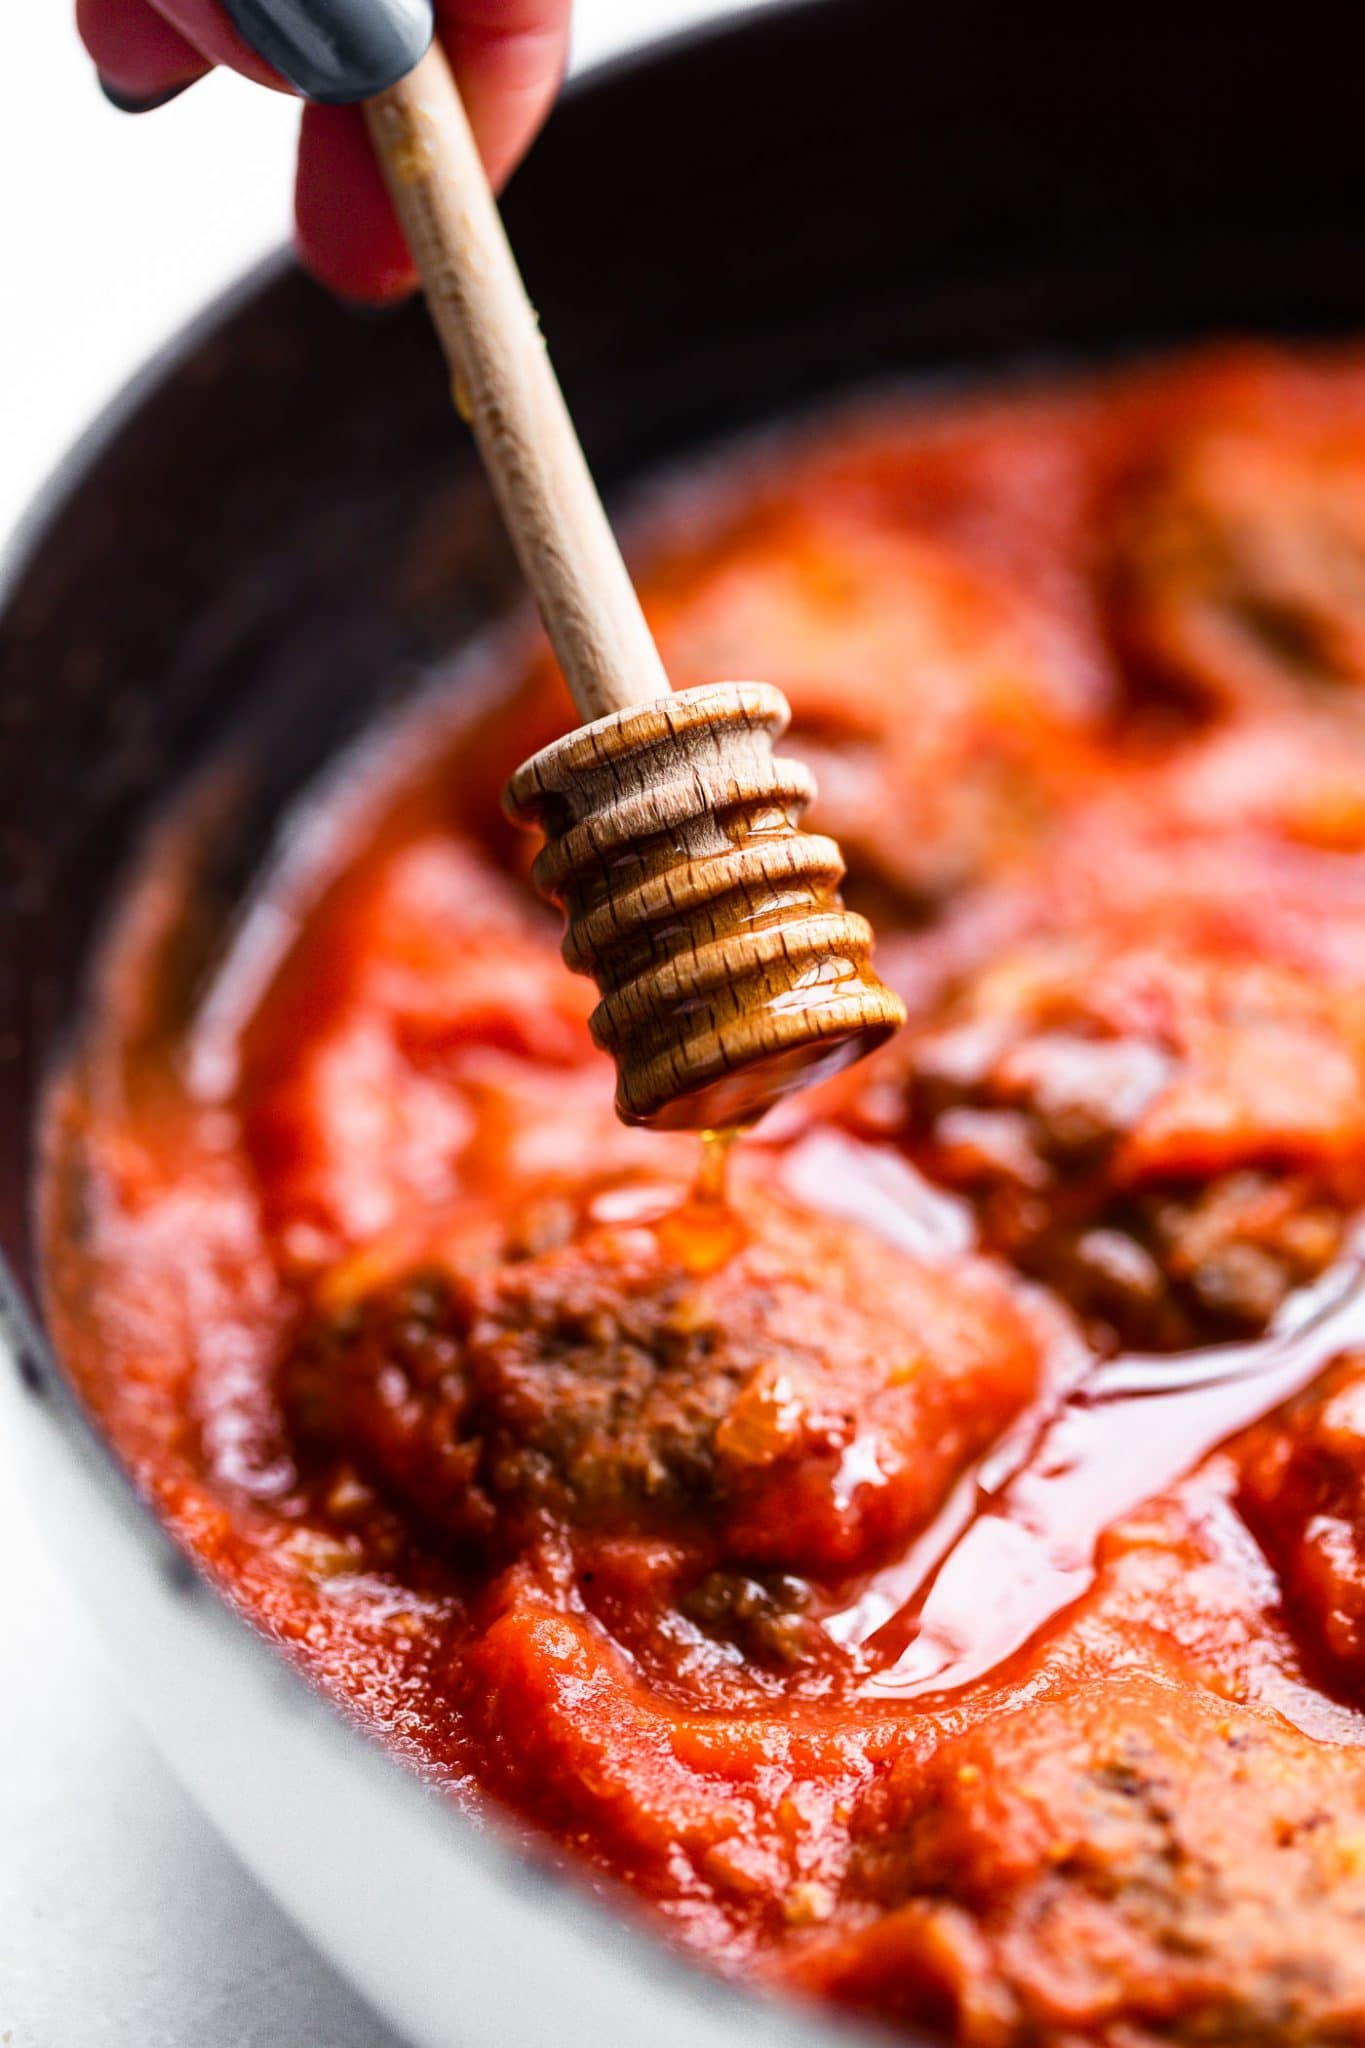 Close up image of honey being drizzled into meatballs and sauce.